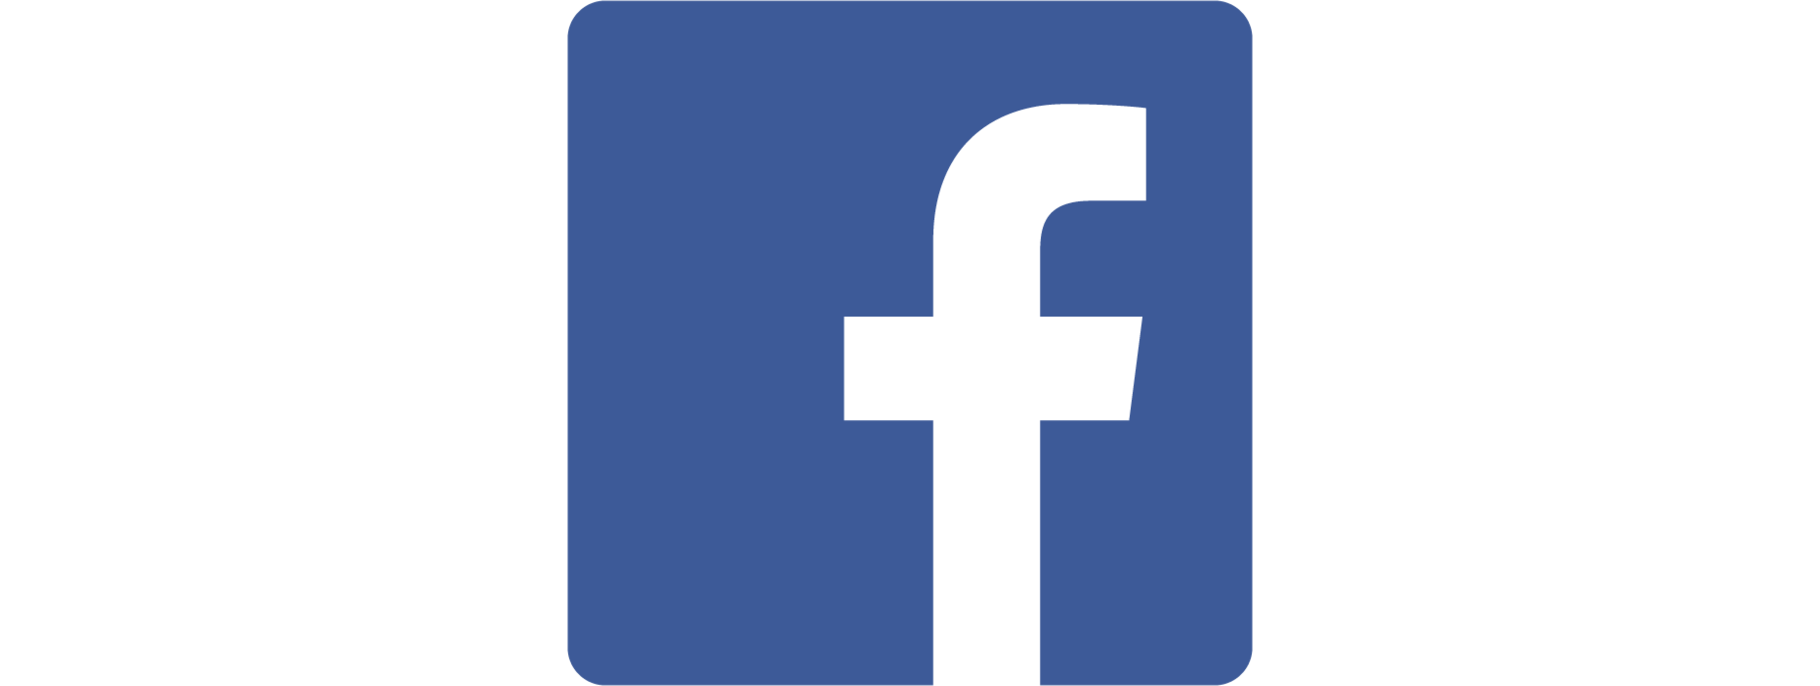 facebook_logos_PNG19751 copy 1.png